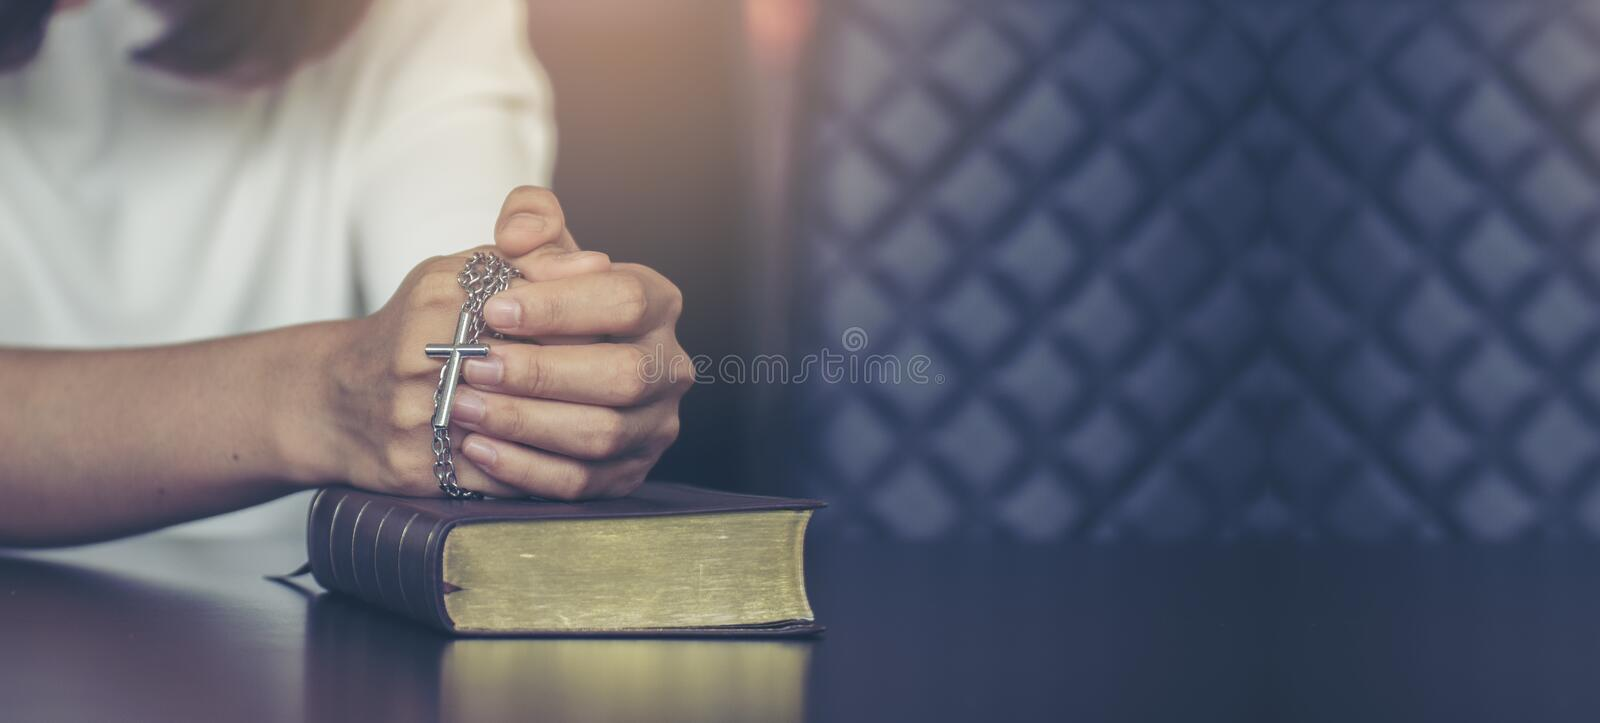 Pray concept. Asian woman praying,hope for peace and free from coronavirus,Hand in hand together by female ,believes and faith in christian religion at church stock photos